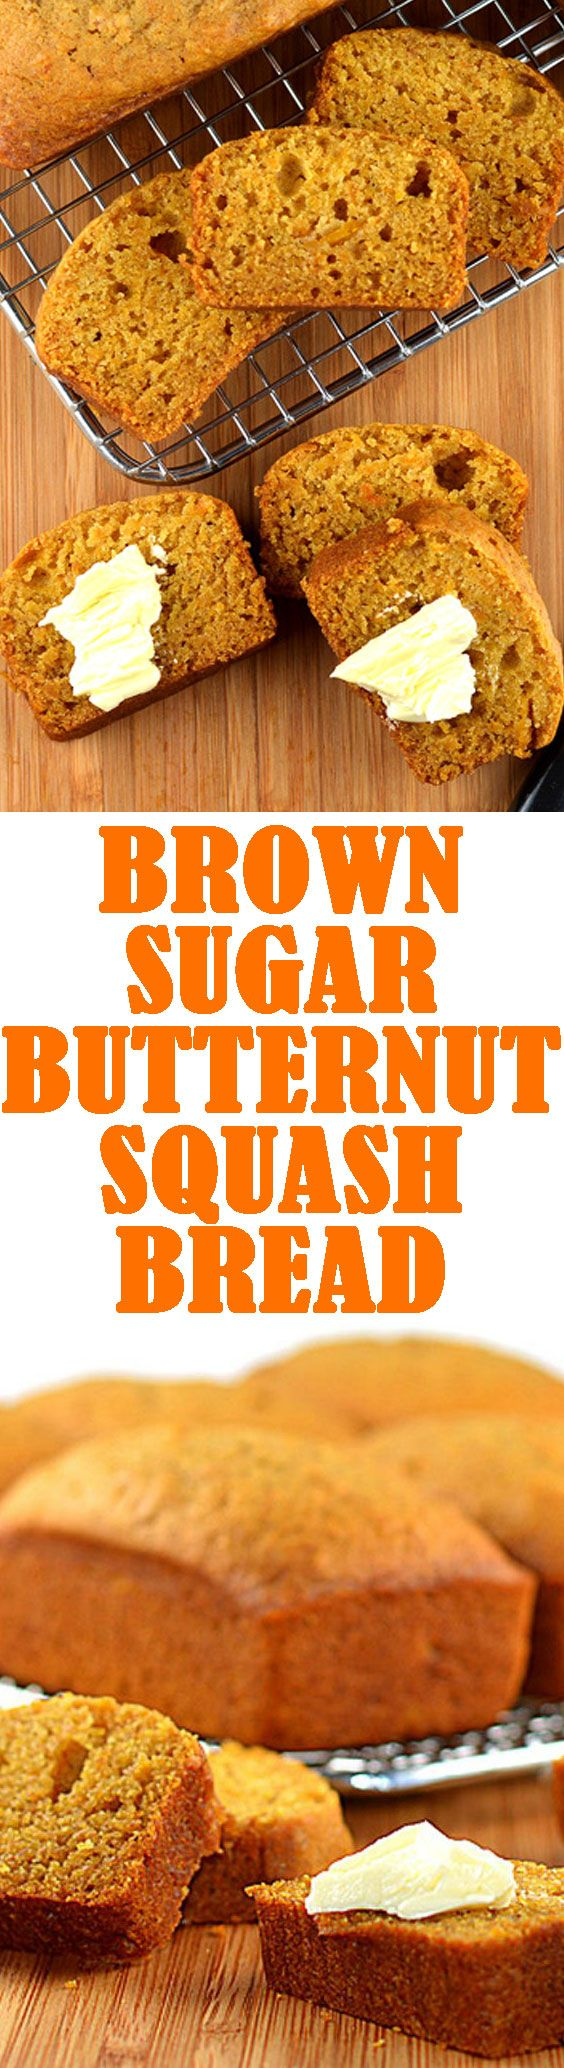 brown sugar brown sugar meatloaf how to make brown sugar brown sugar ...